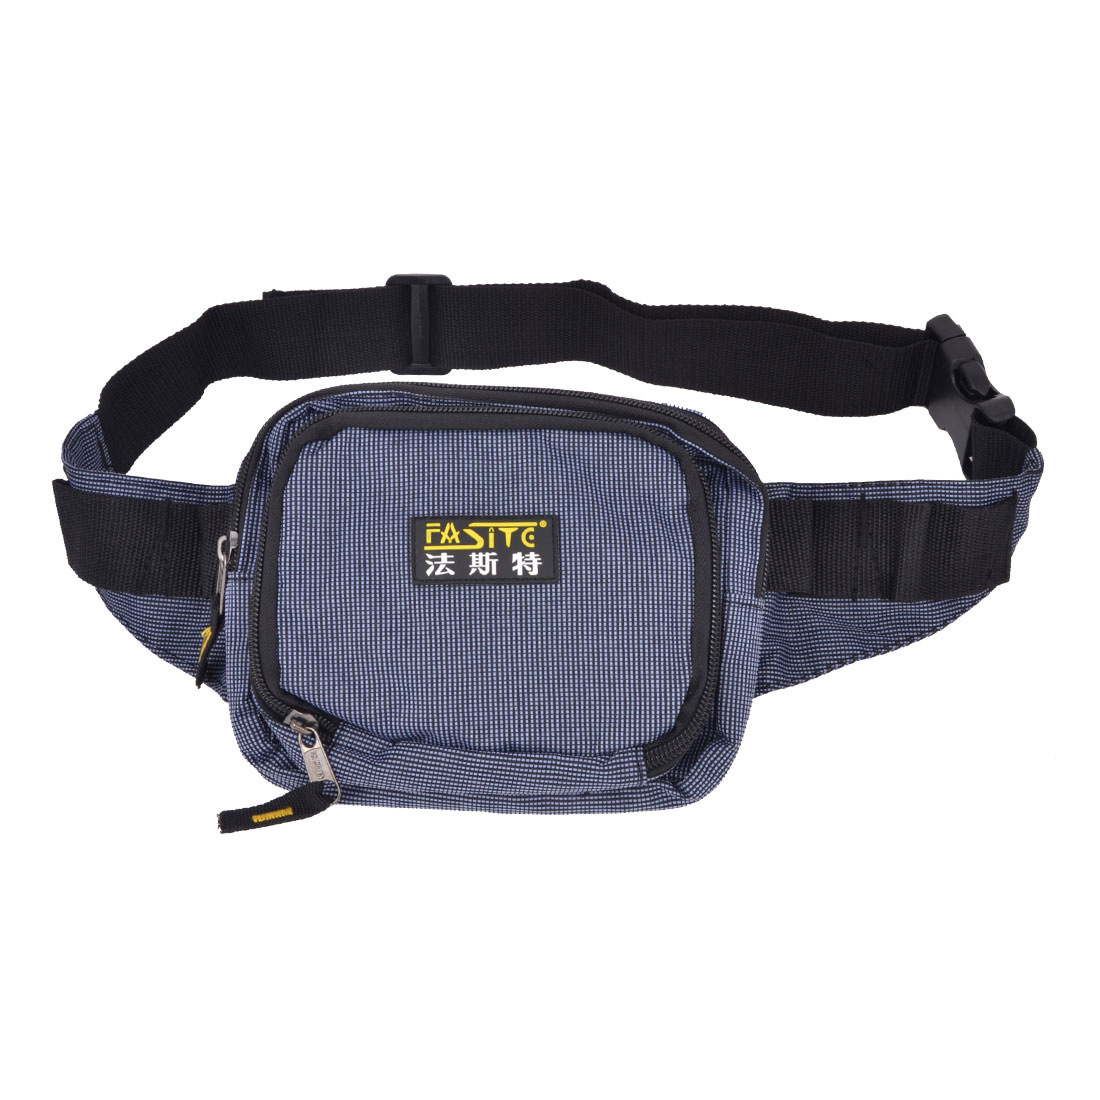 Grids Printed Zipper Closure Blue Nylon Oxford Tool Holder Waist Bag